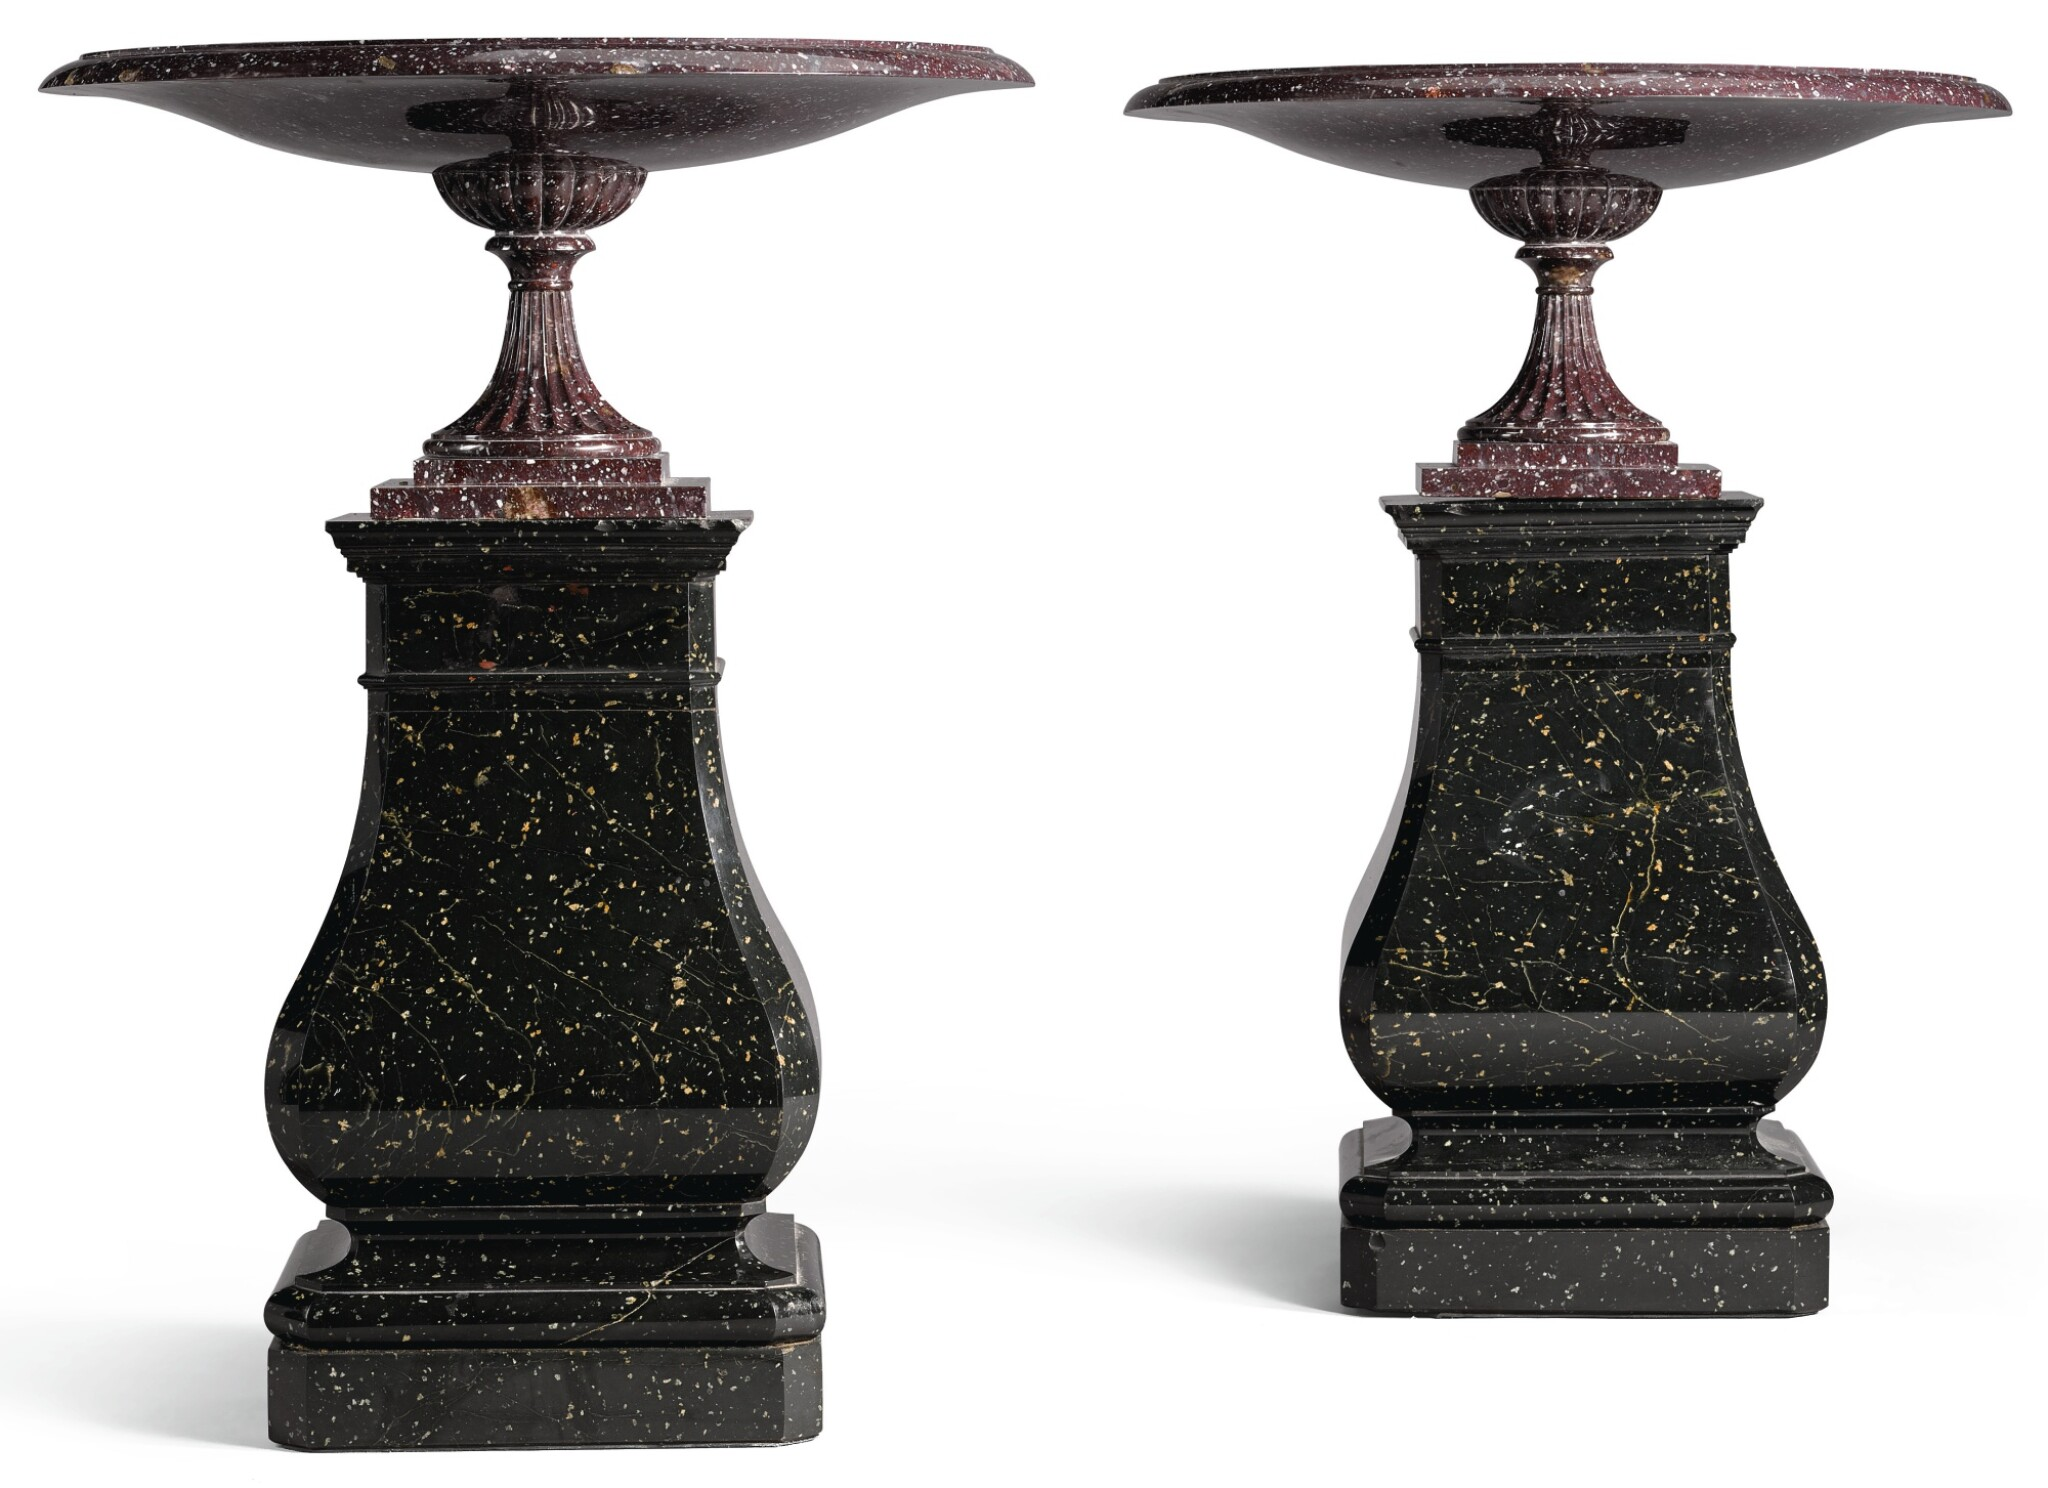 A PAIR OF RUSSIAN RED AND GREEN KORGON PORPHYRY TAZZE CIRCA 1860, BY THE KOLYVAN IMPERIAL LAPIDARY WORKS